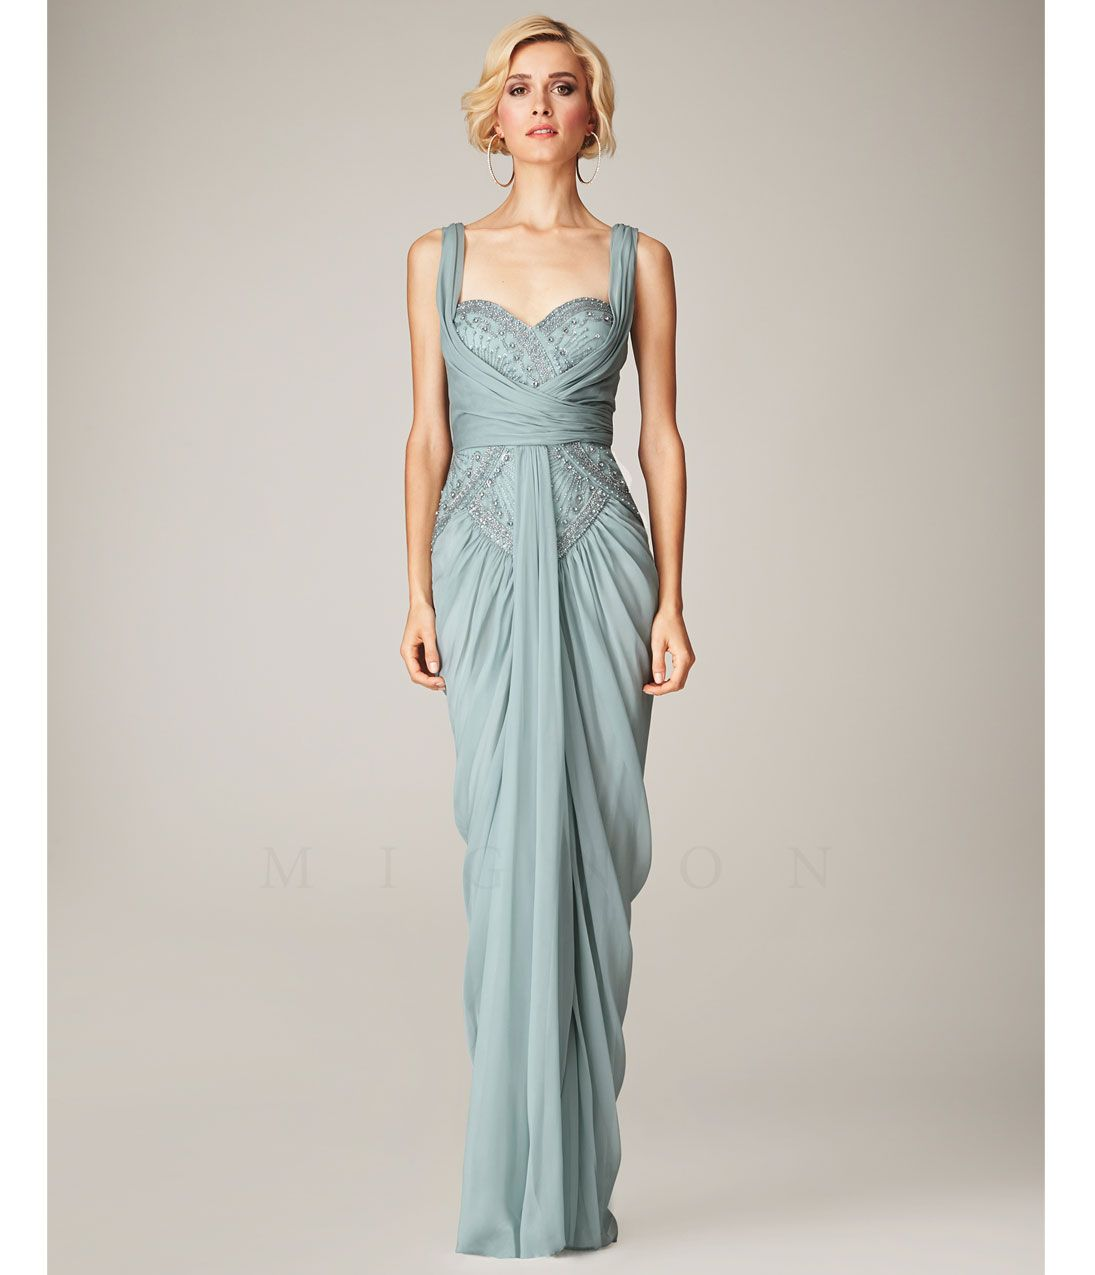 1920s Formal Dresses | Dress formal, Formal and Prom